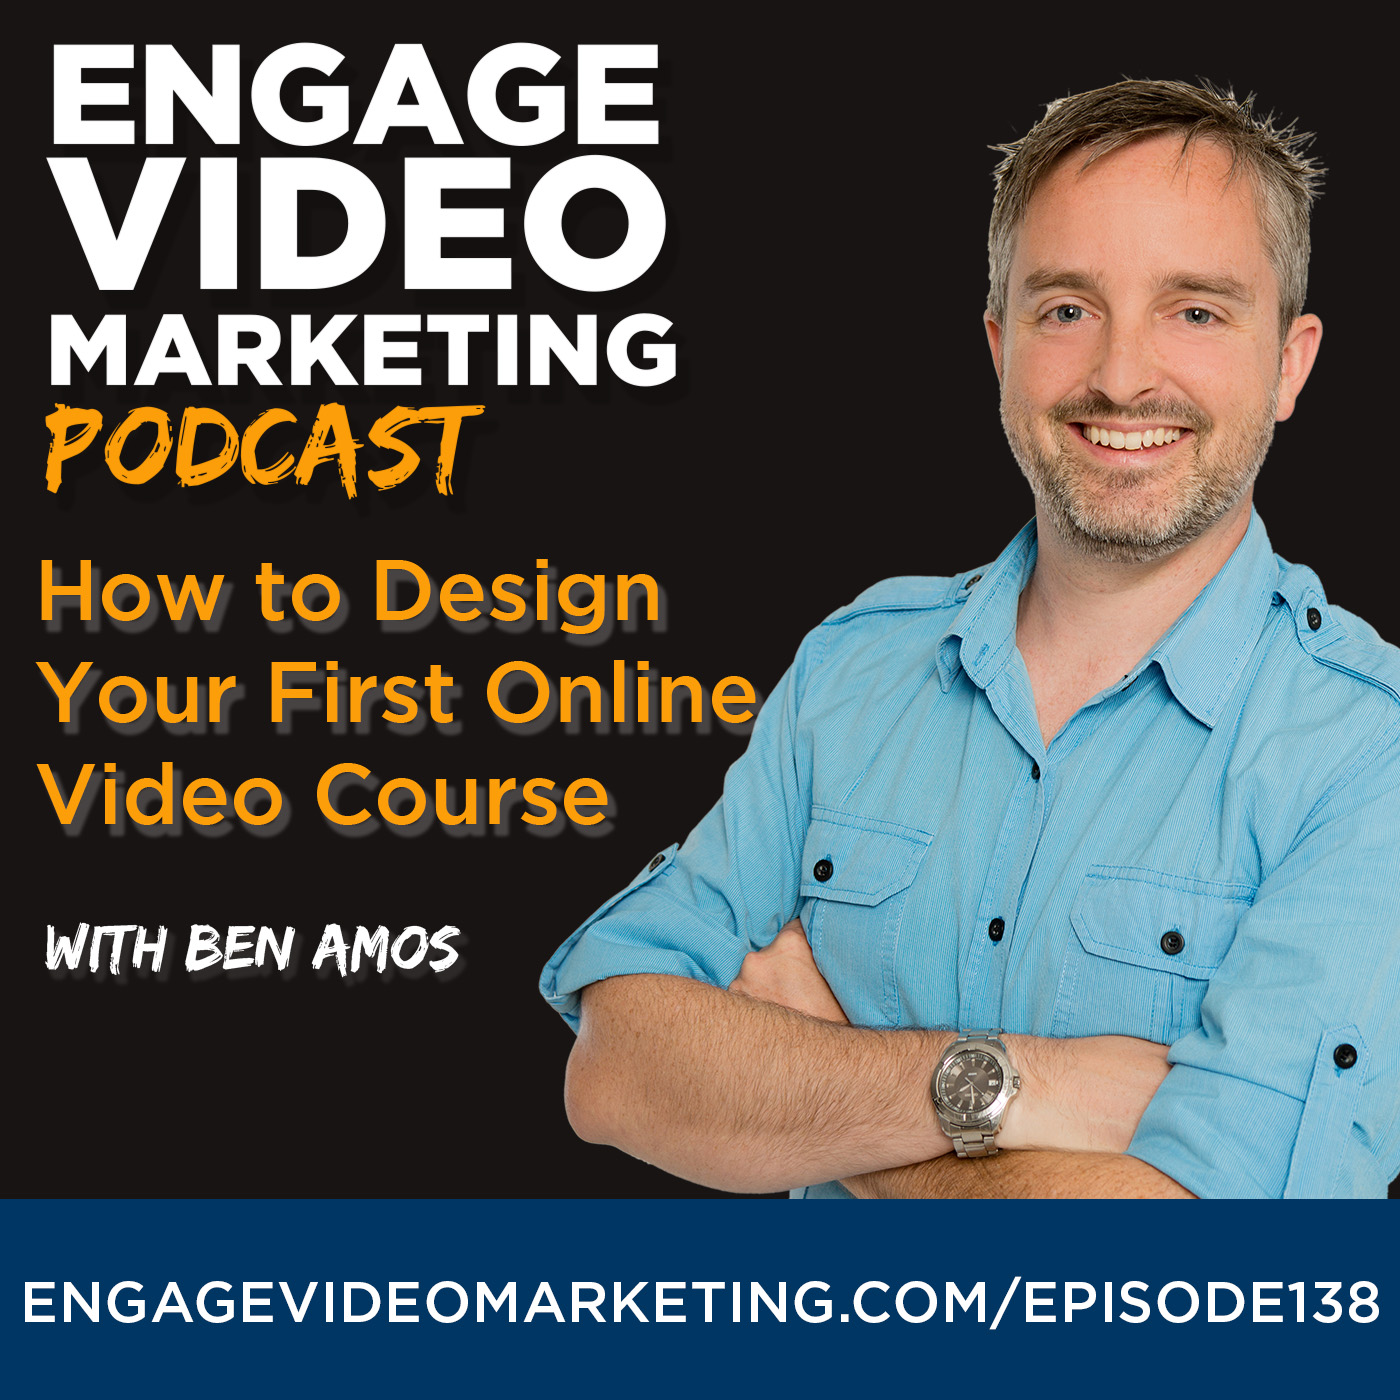 How to Design Your First Online Video Course with Ben Amos